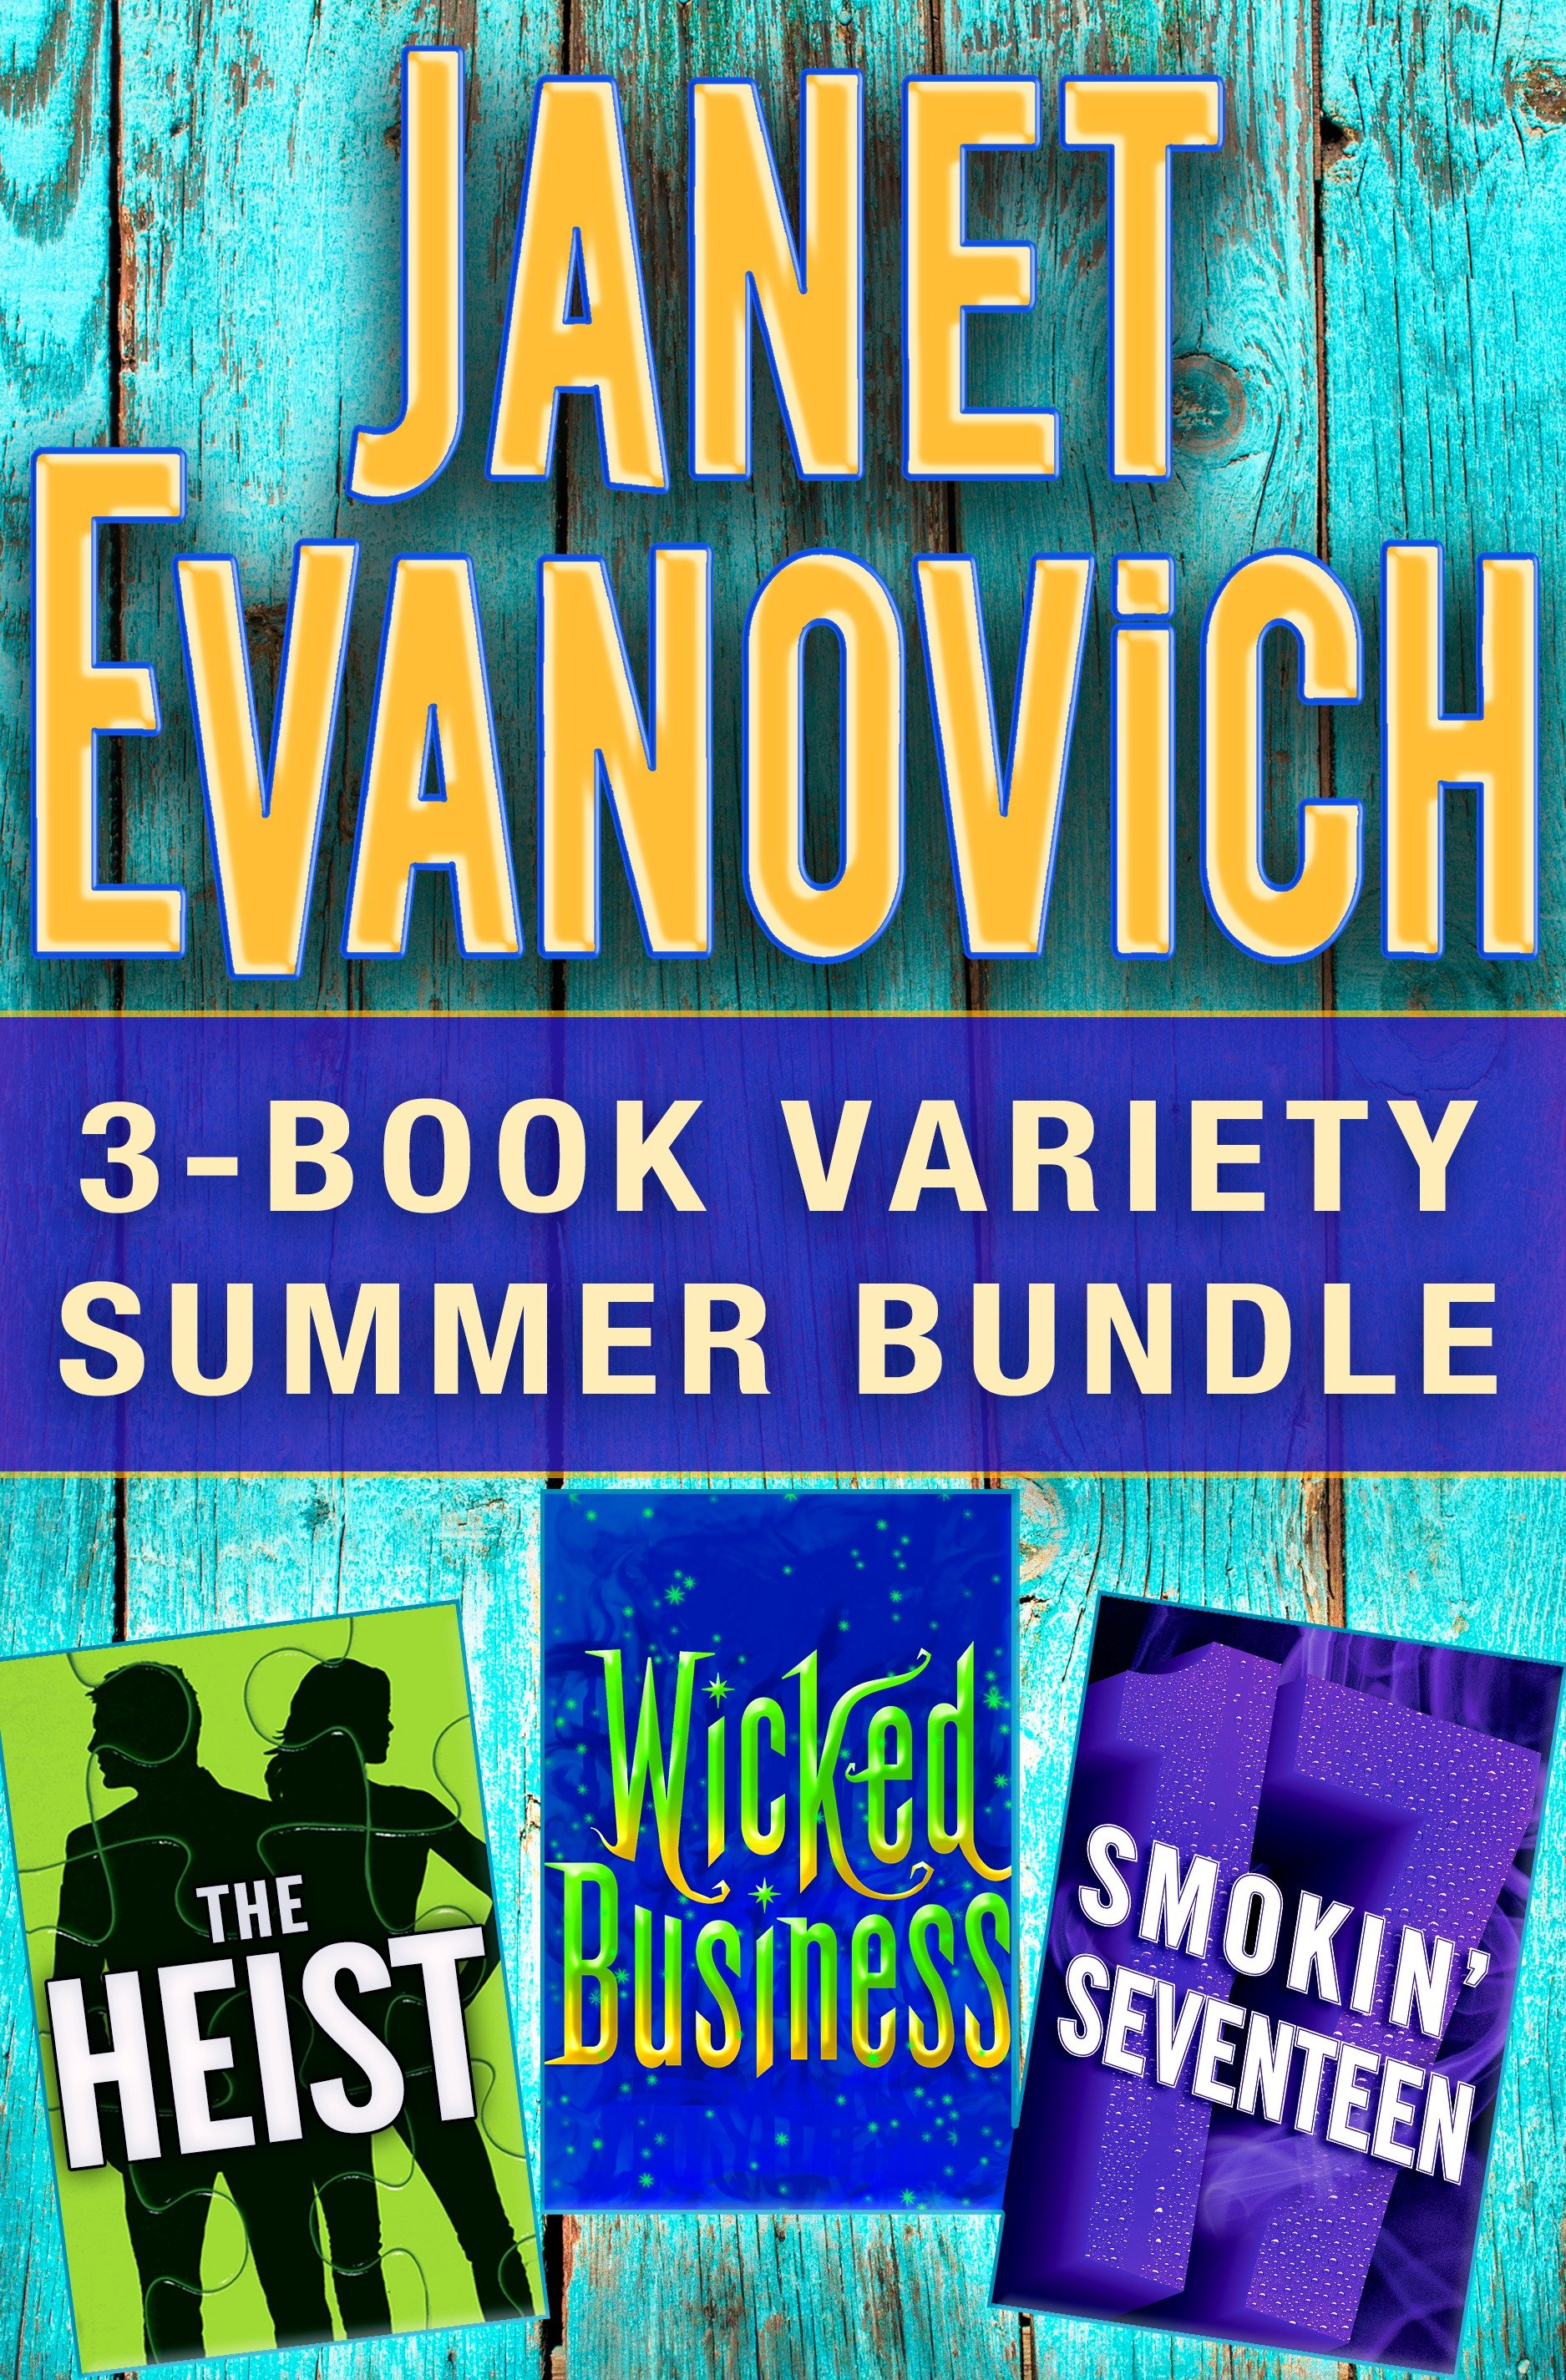 Janet Evanovich 3-Book Variety Summer Bundle The Heist, Wicked Business, Smokin' Seventeen